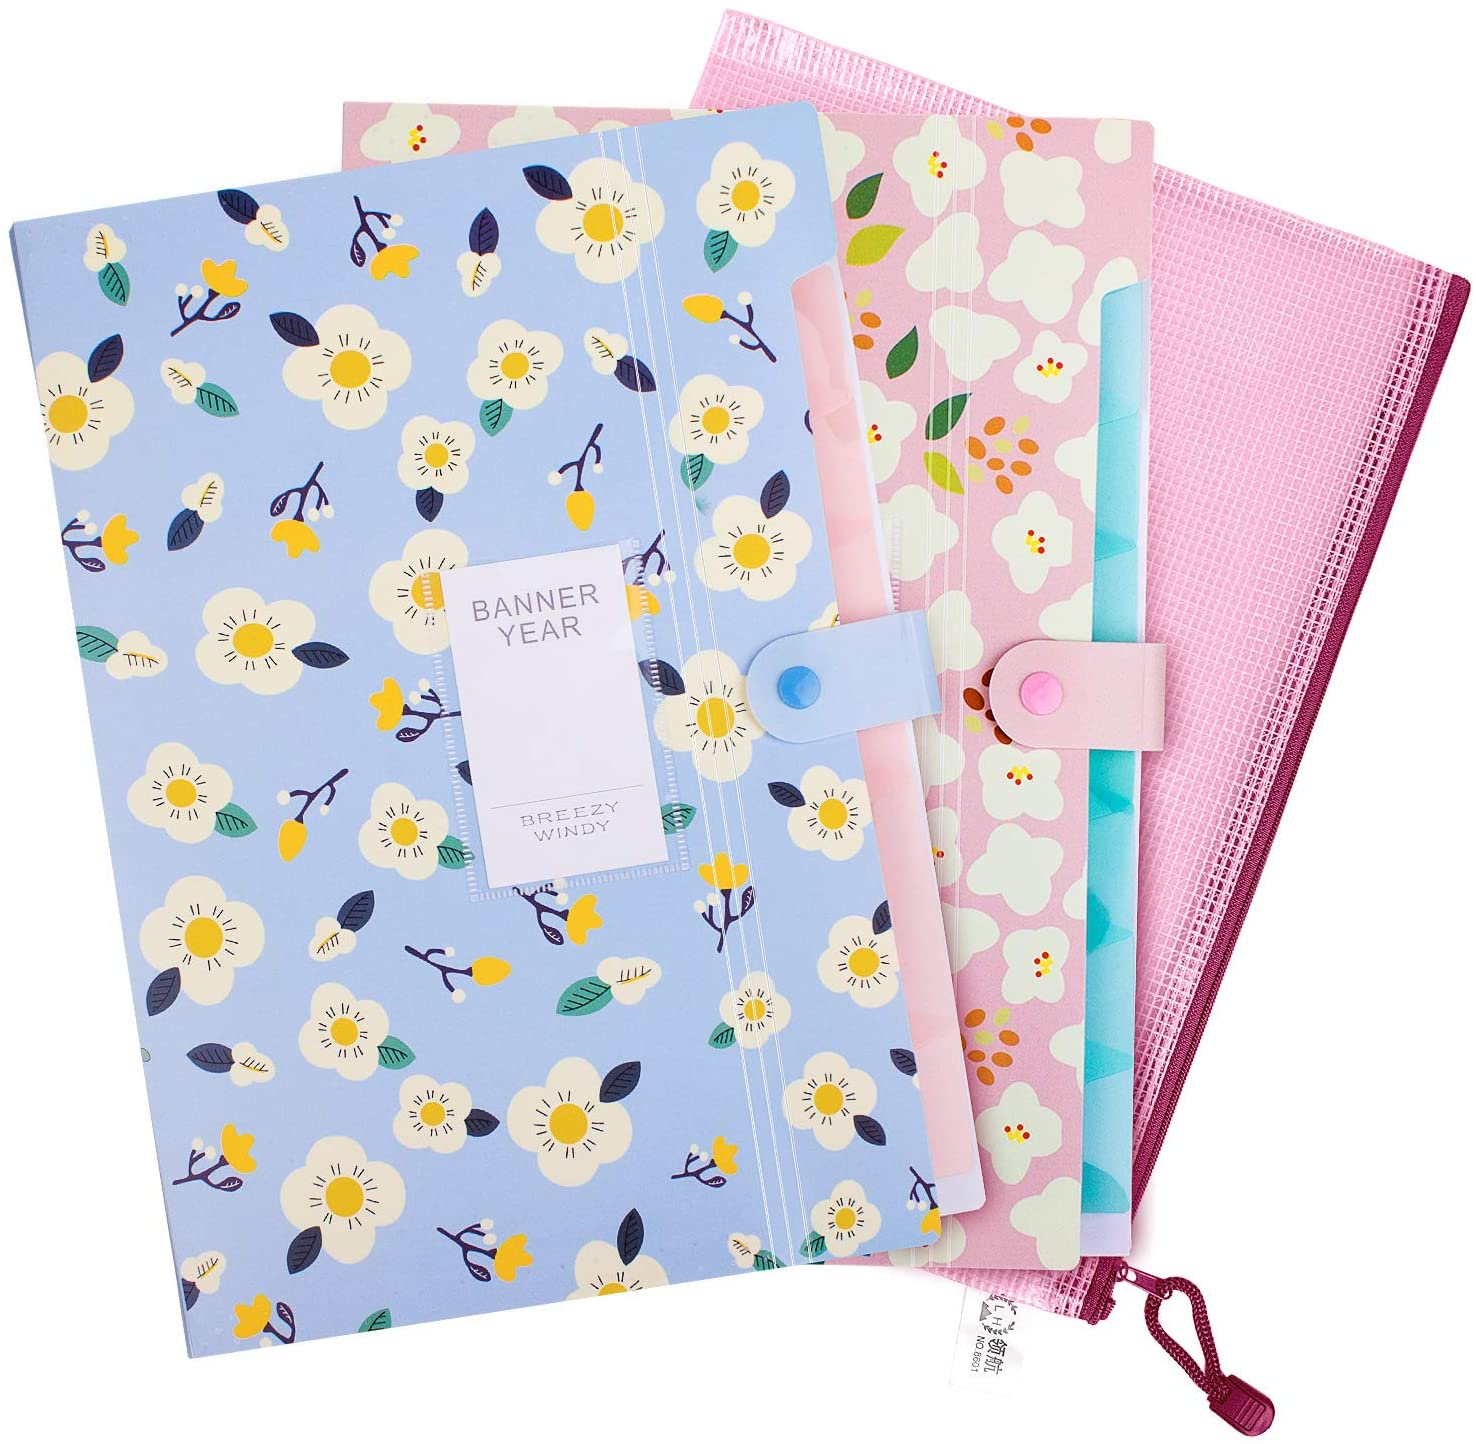 A4 Expanding File Folder,Floral Printed Accordion Document File Folder Document Organizer